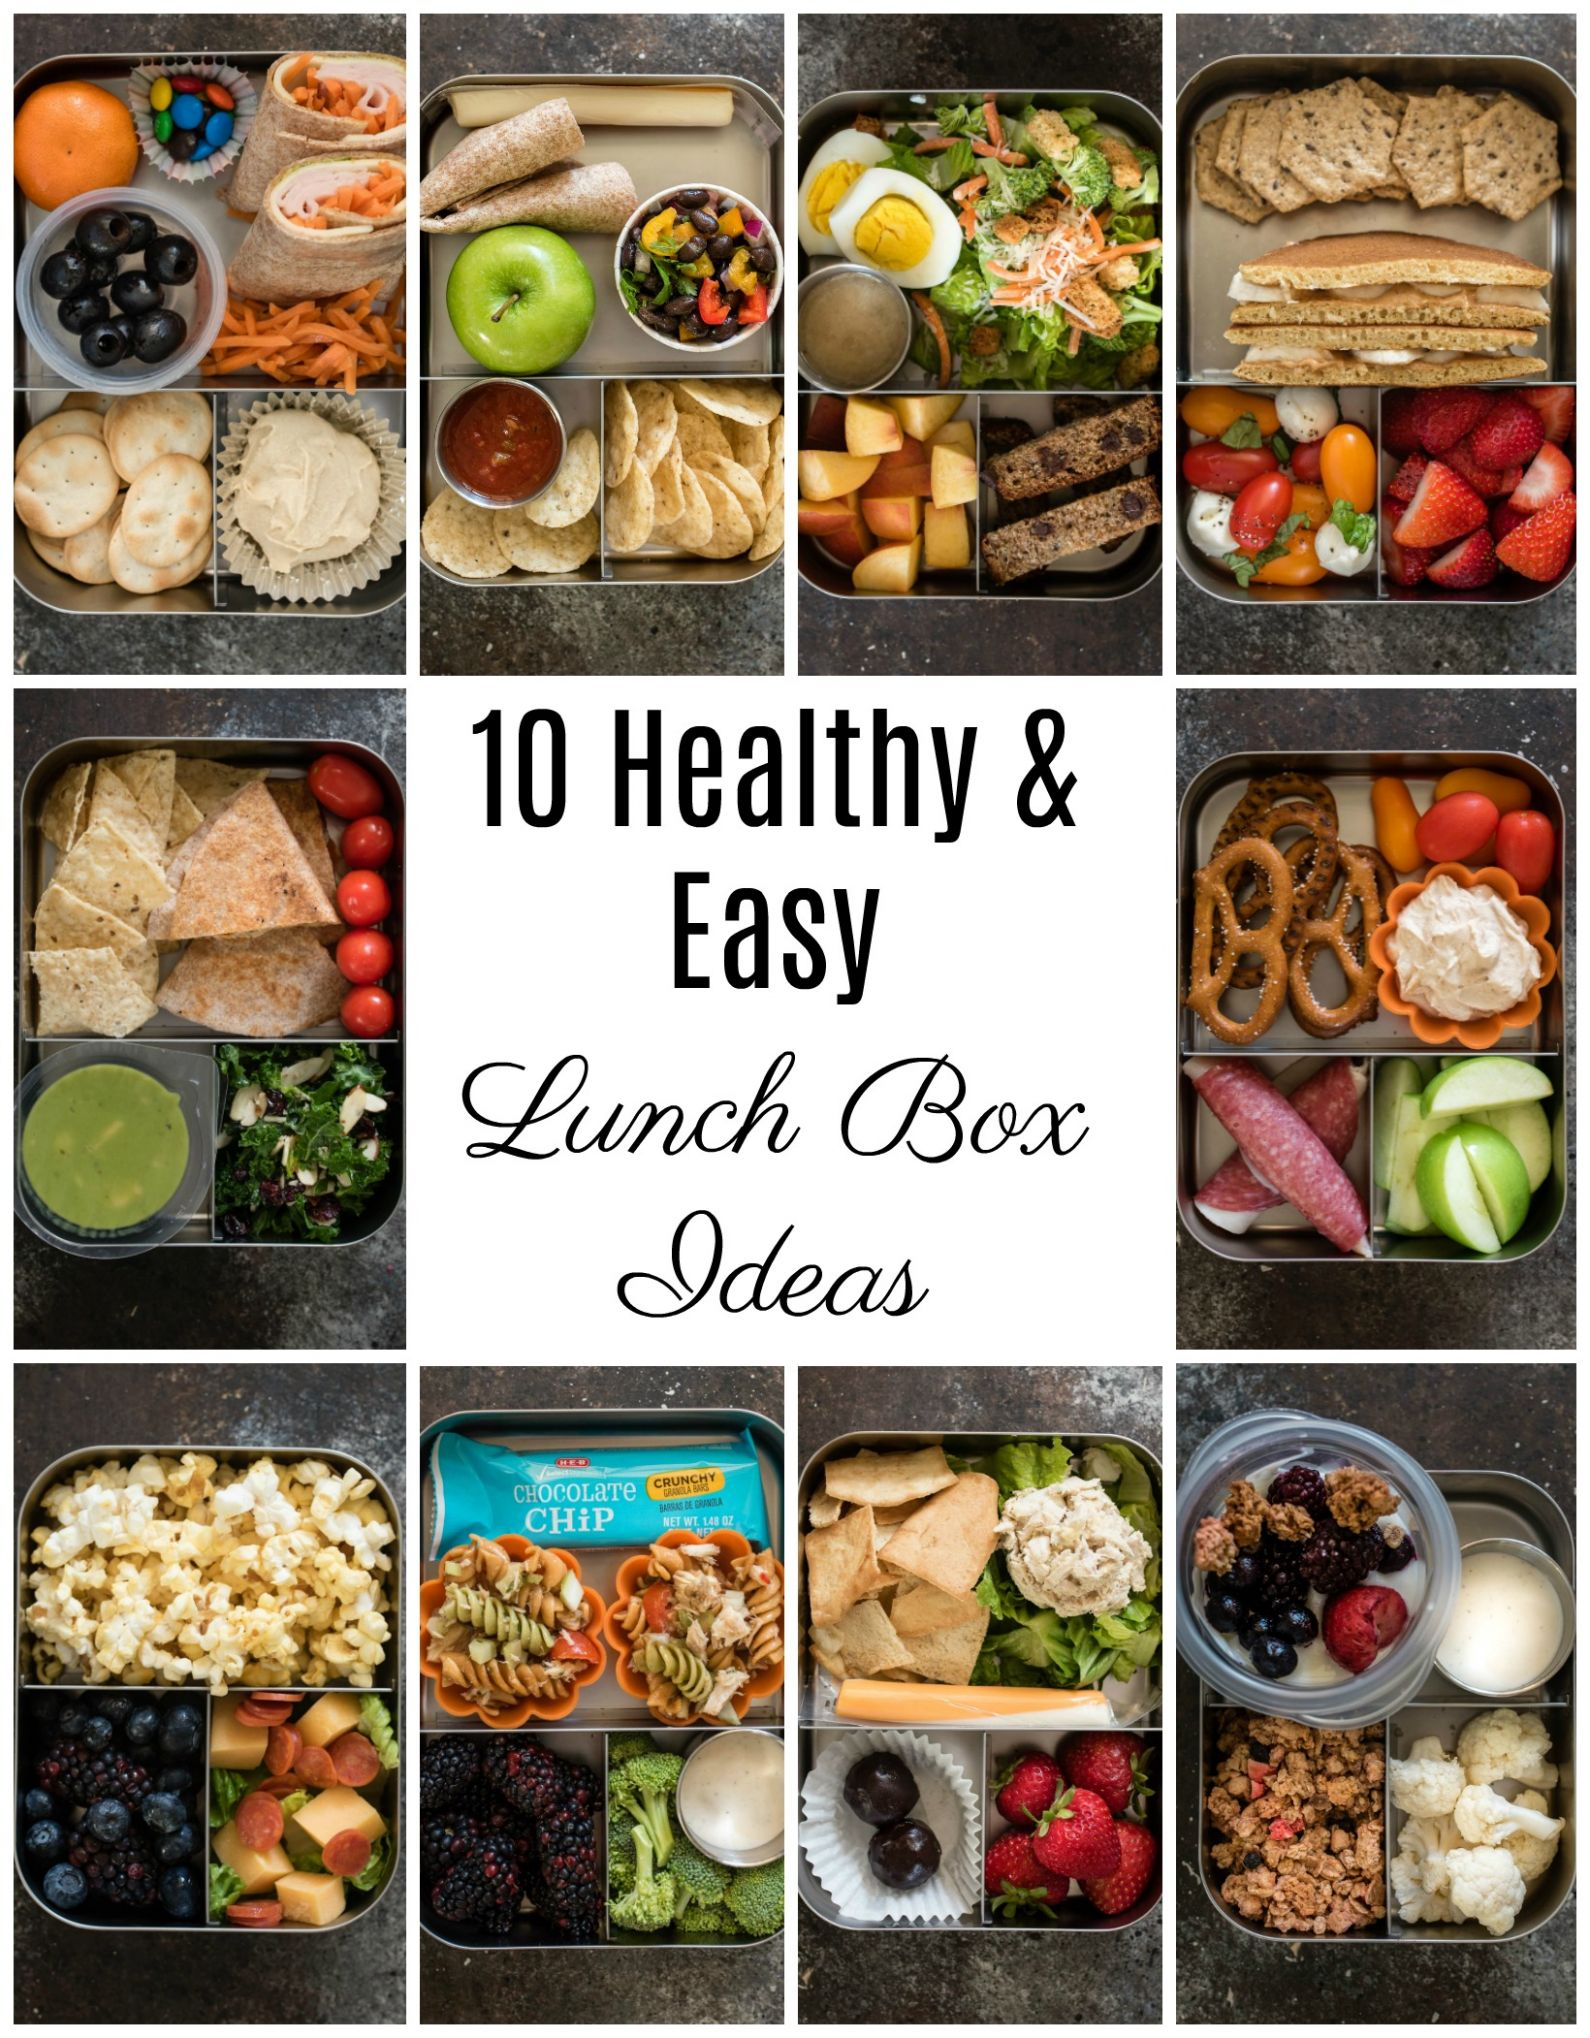 Pancake Sandwich and Healthy LunchBoxes - Sandwich Recipes Lunch Healthy